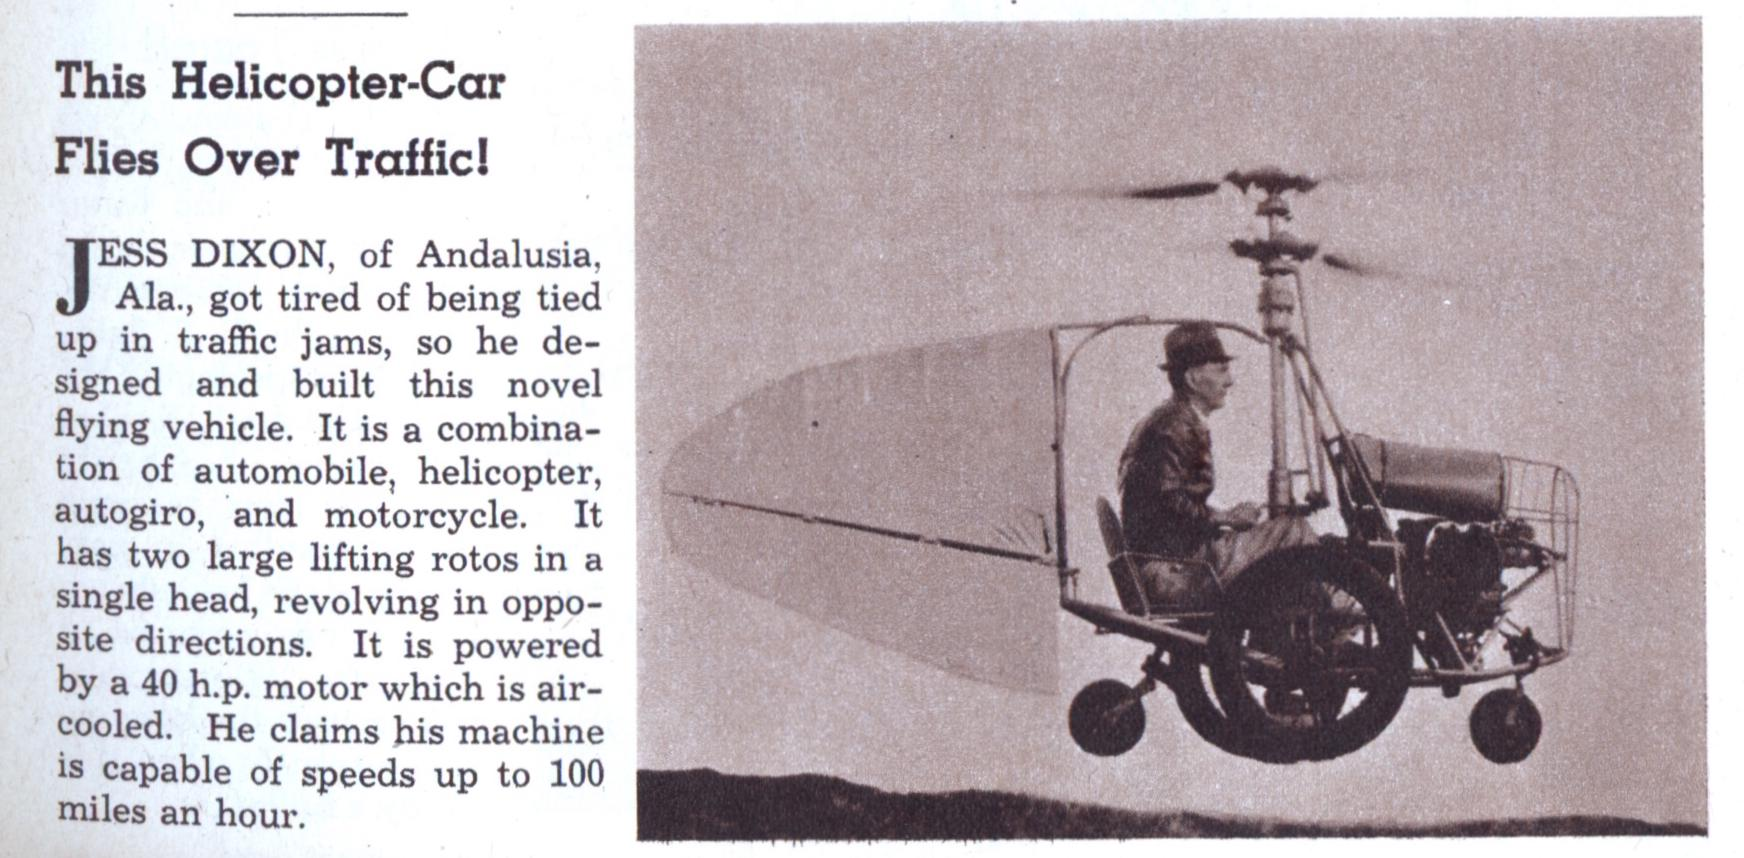 A helicopter-car